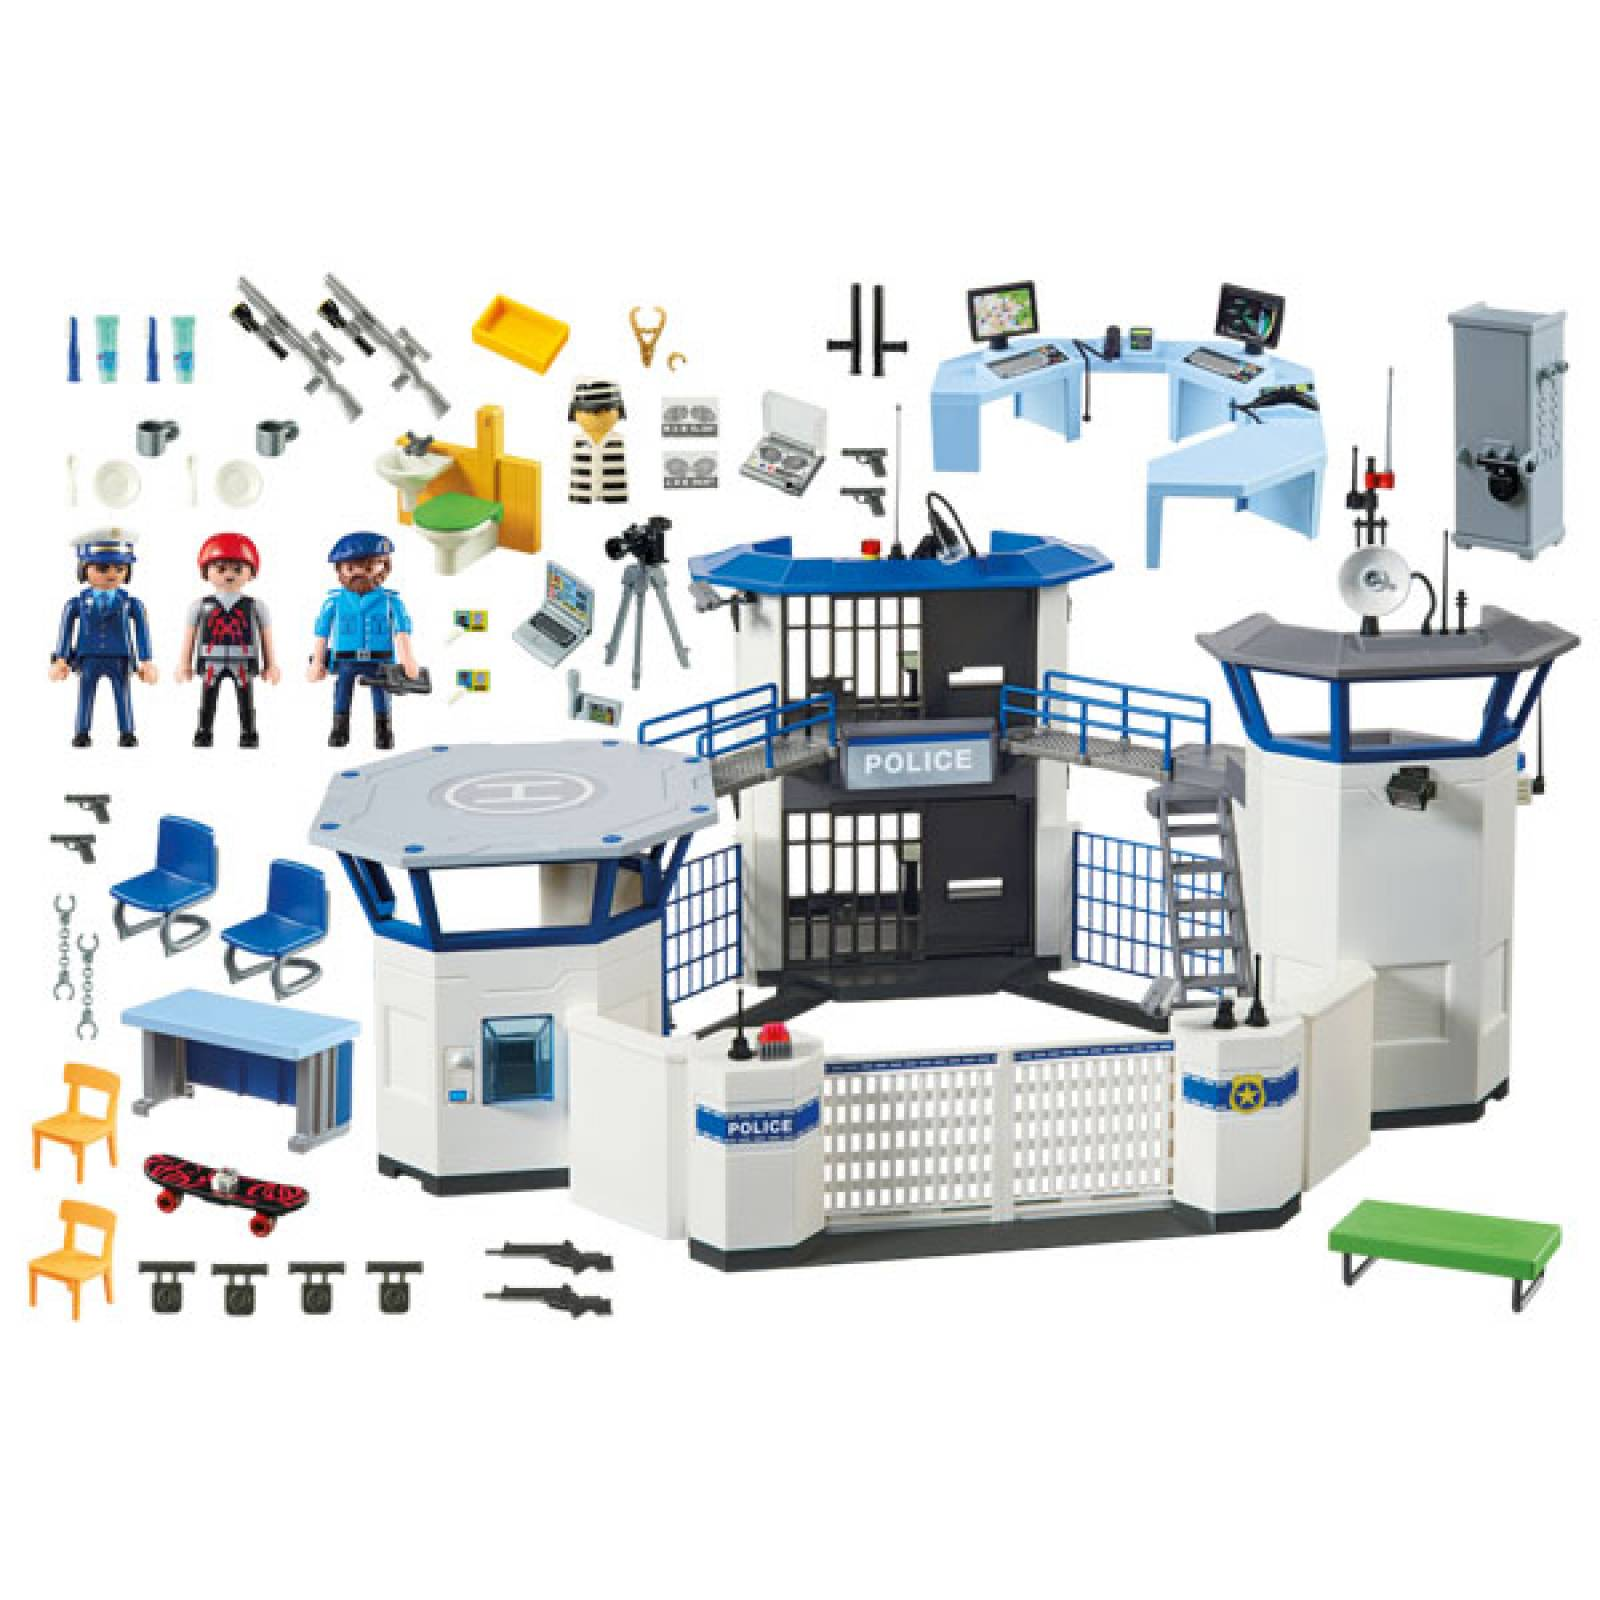 Police Headquarters with Prison City Action Playmobil 6919 thumbnails